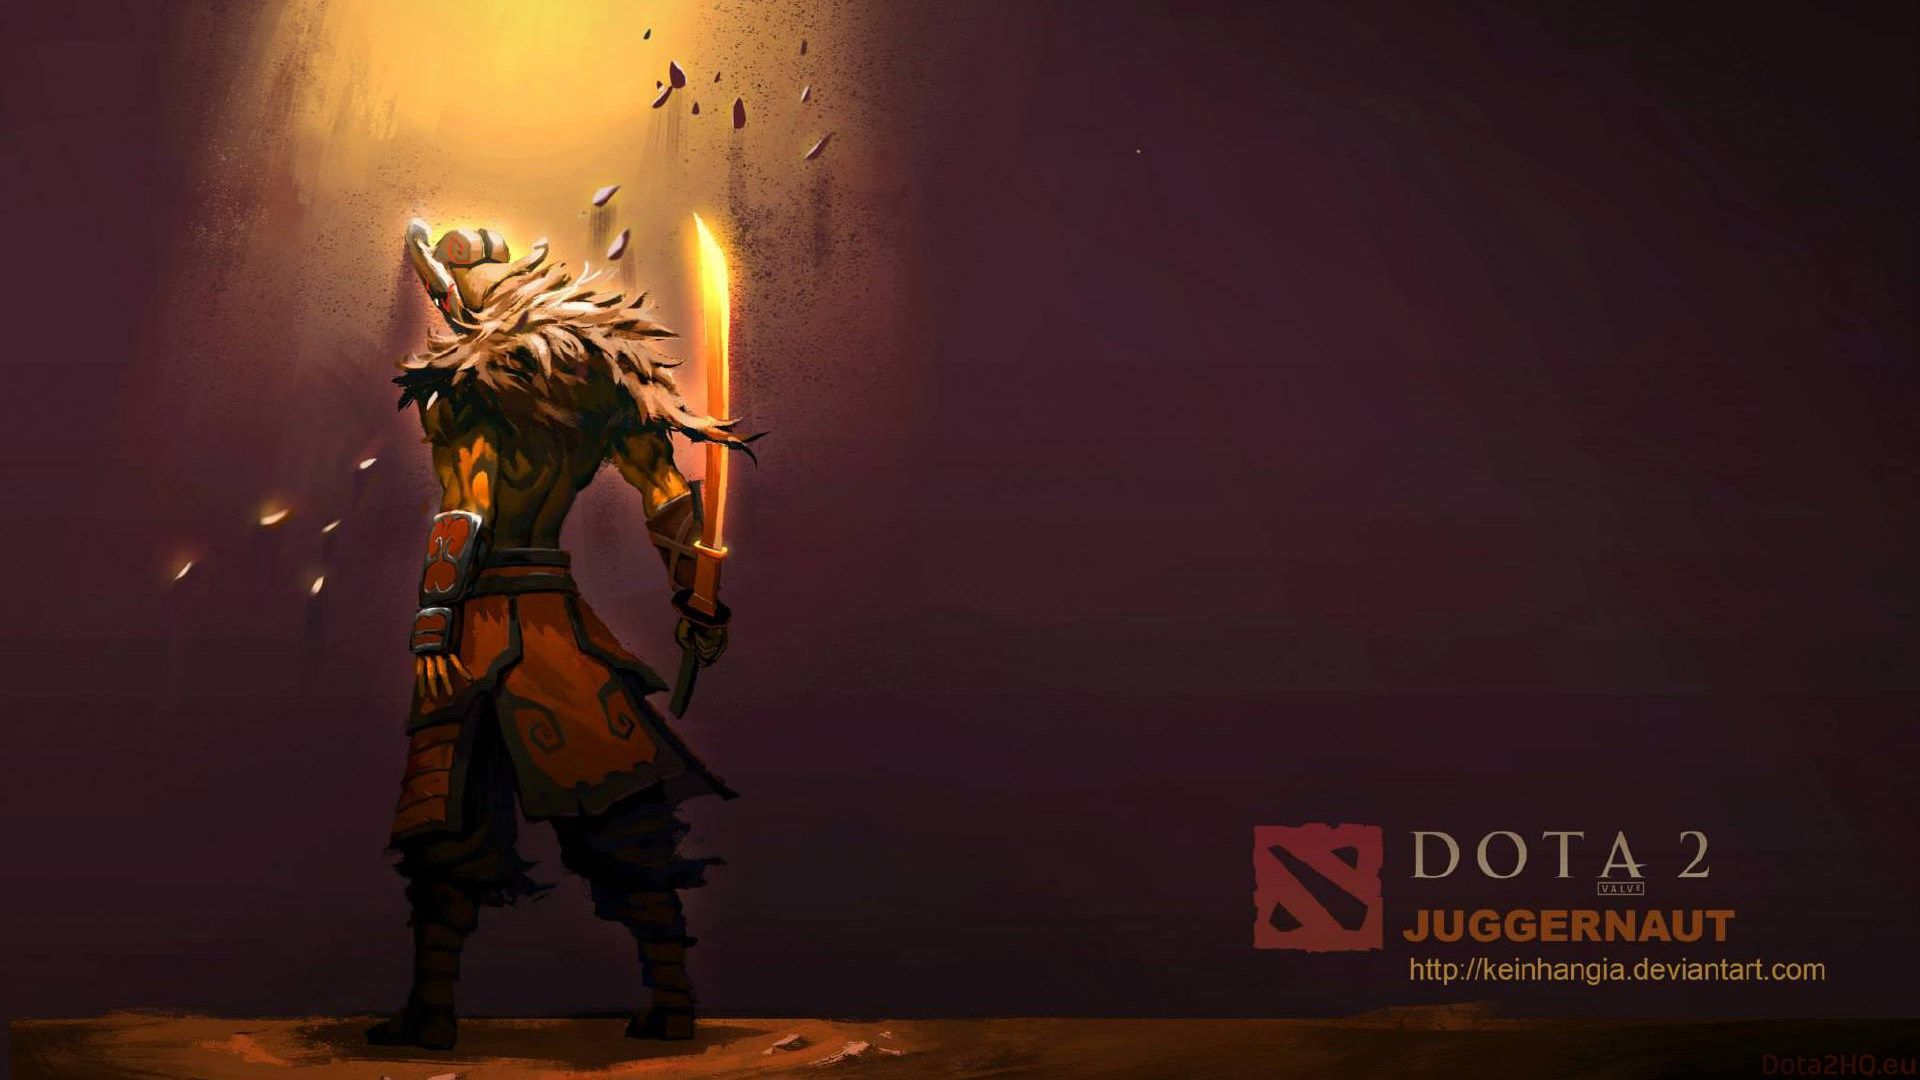 1920x1080 Juggernaut Dota 2 Wallpaper Hd